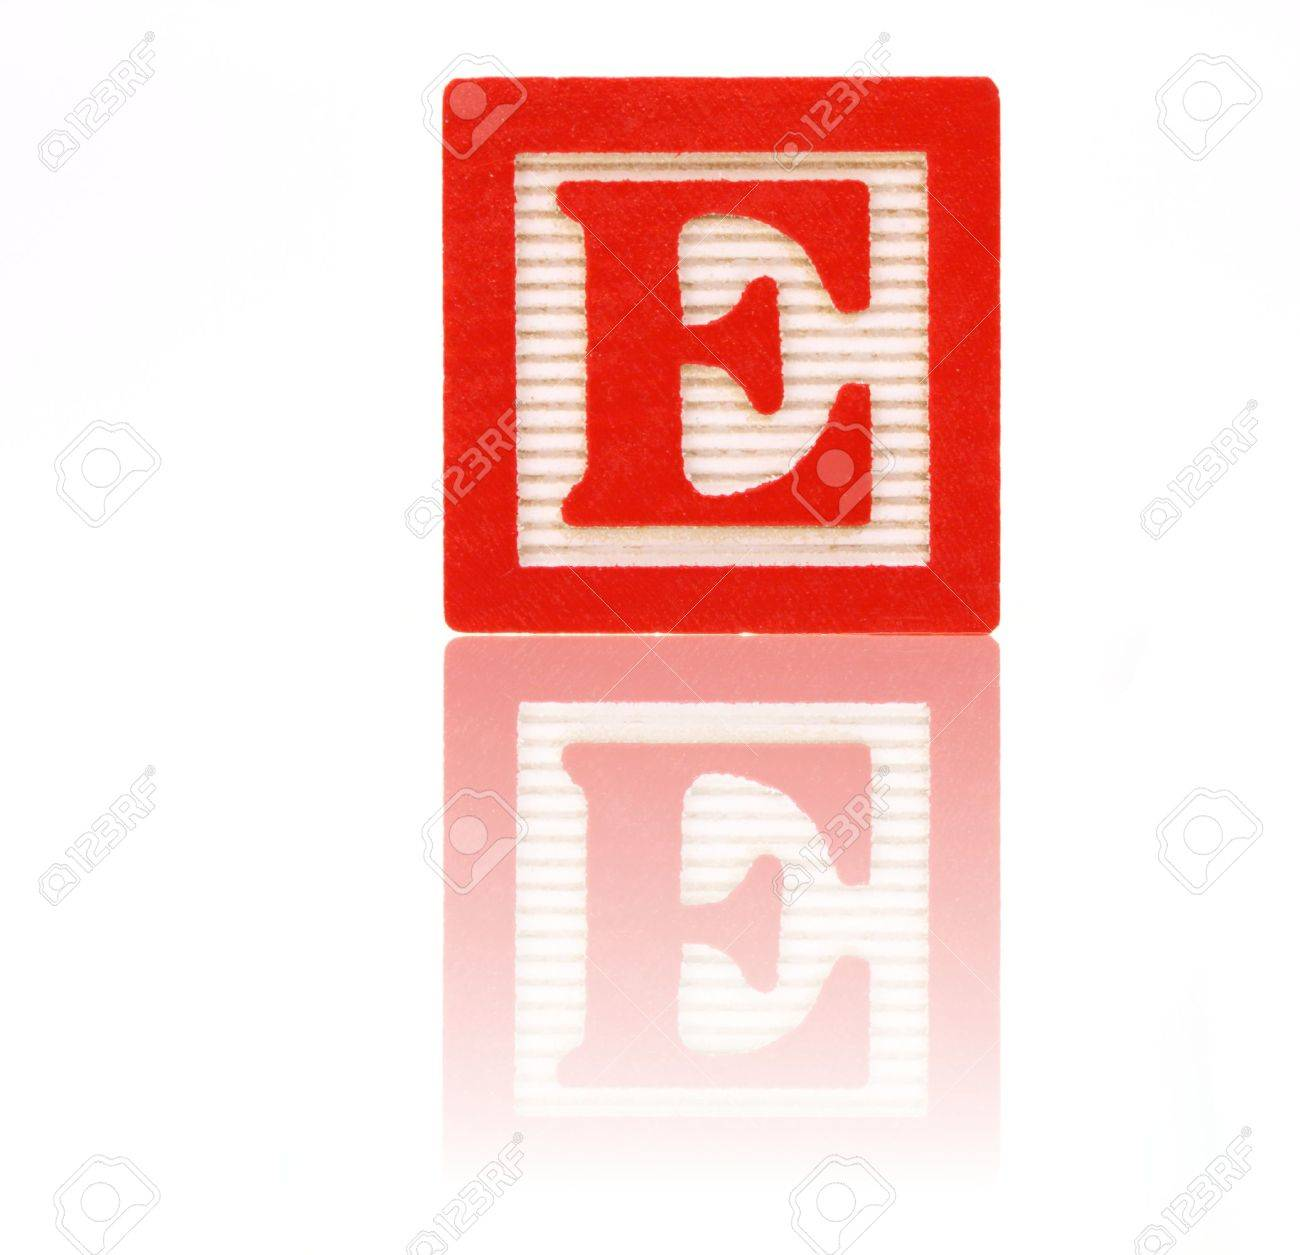 letter e in an alphabet wood block on a reflective surface Stock Photo - 3098962